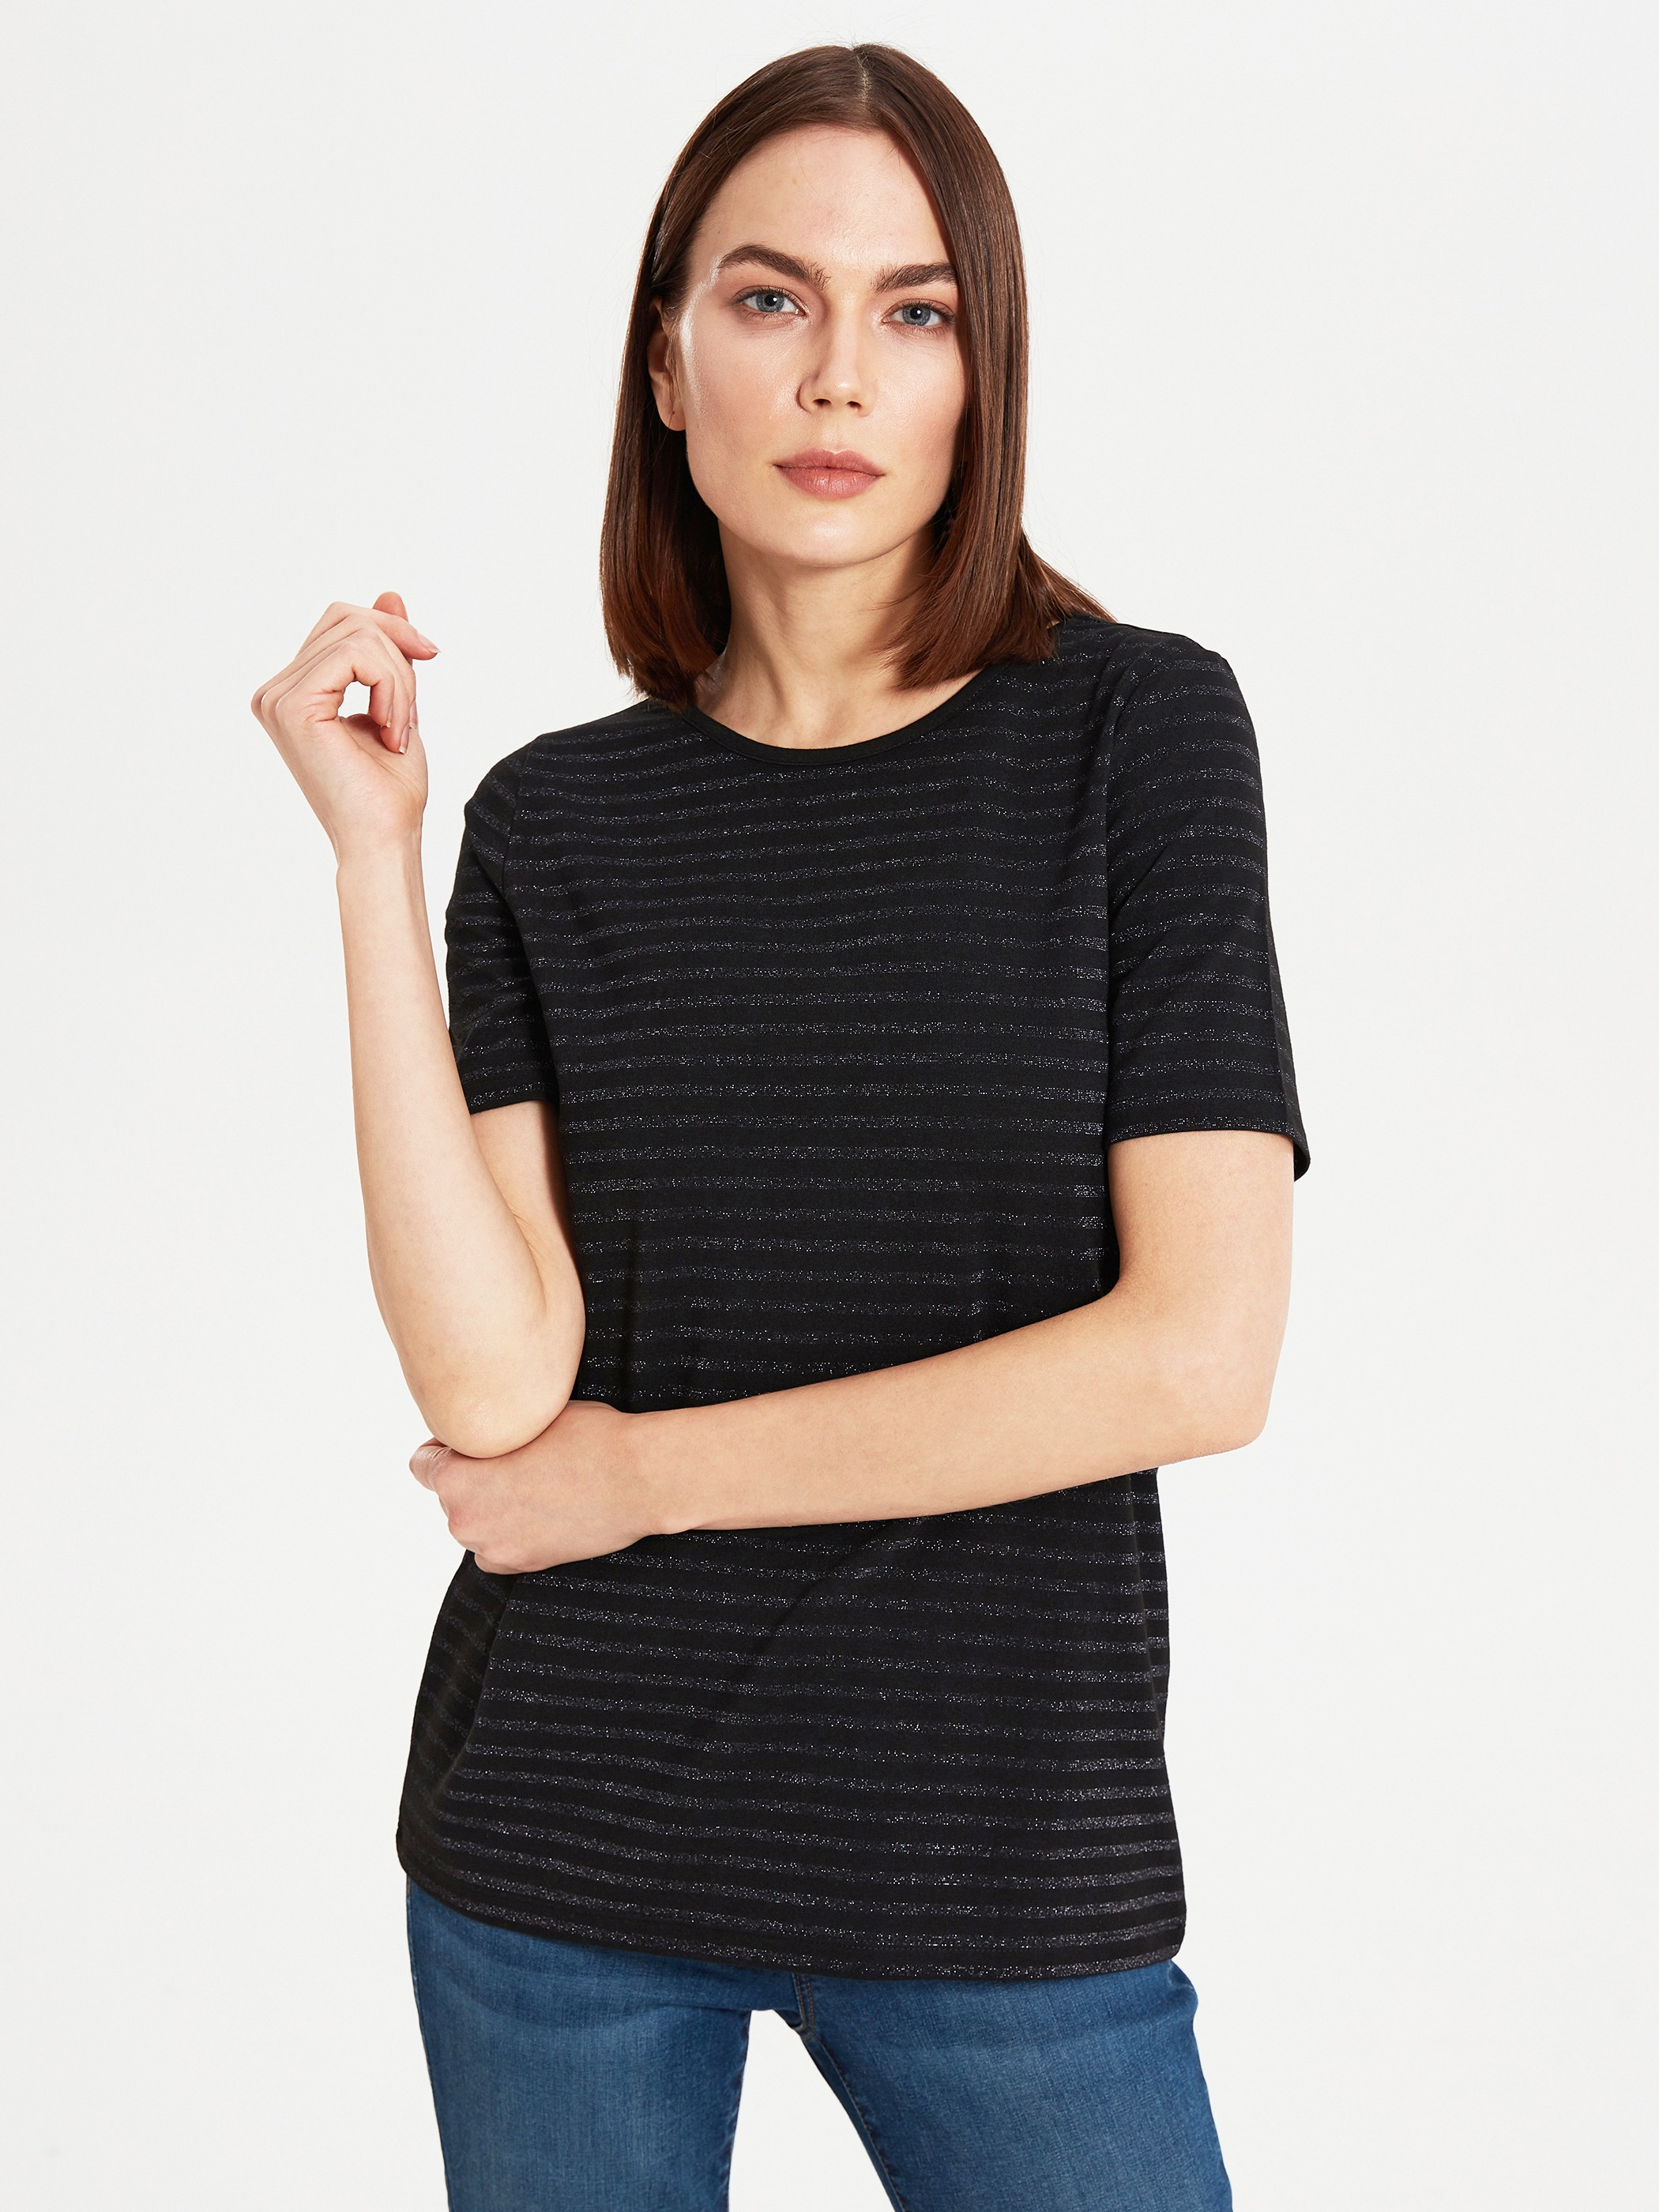 GREY - Striped Stretch T-Shirt - 0S2164Z8